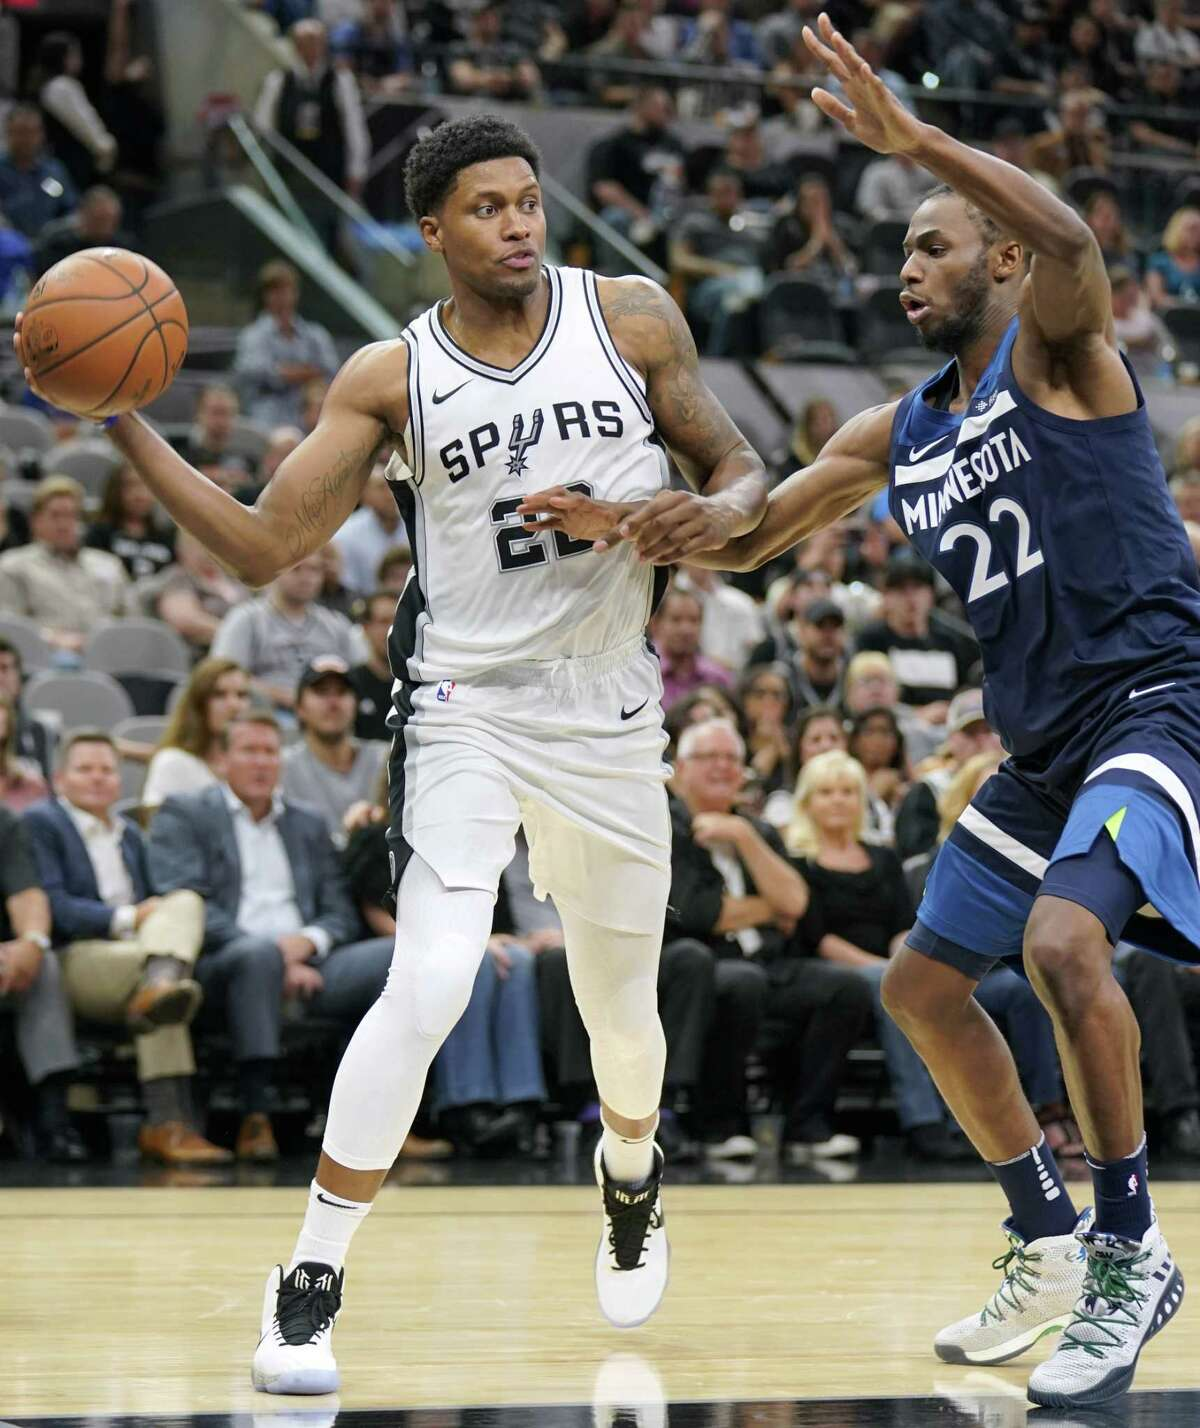 Rudy Gay is looking like a bargain pickup for the Spurs.